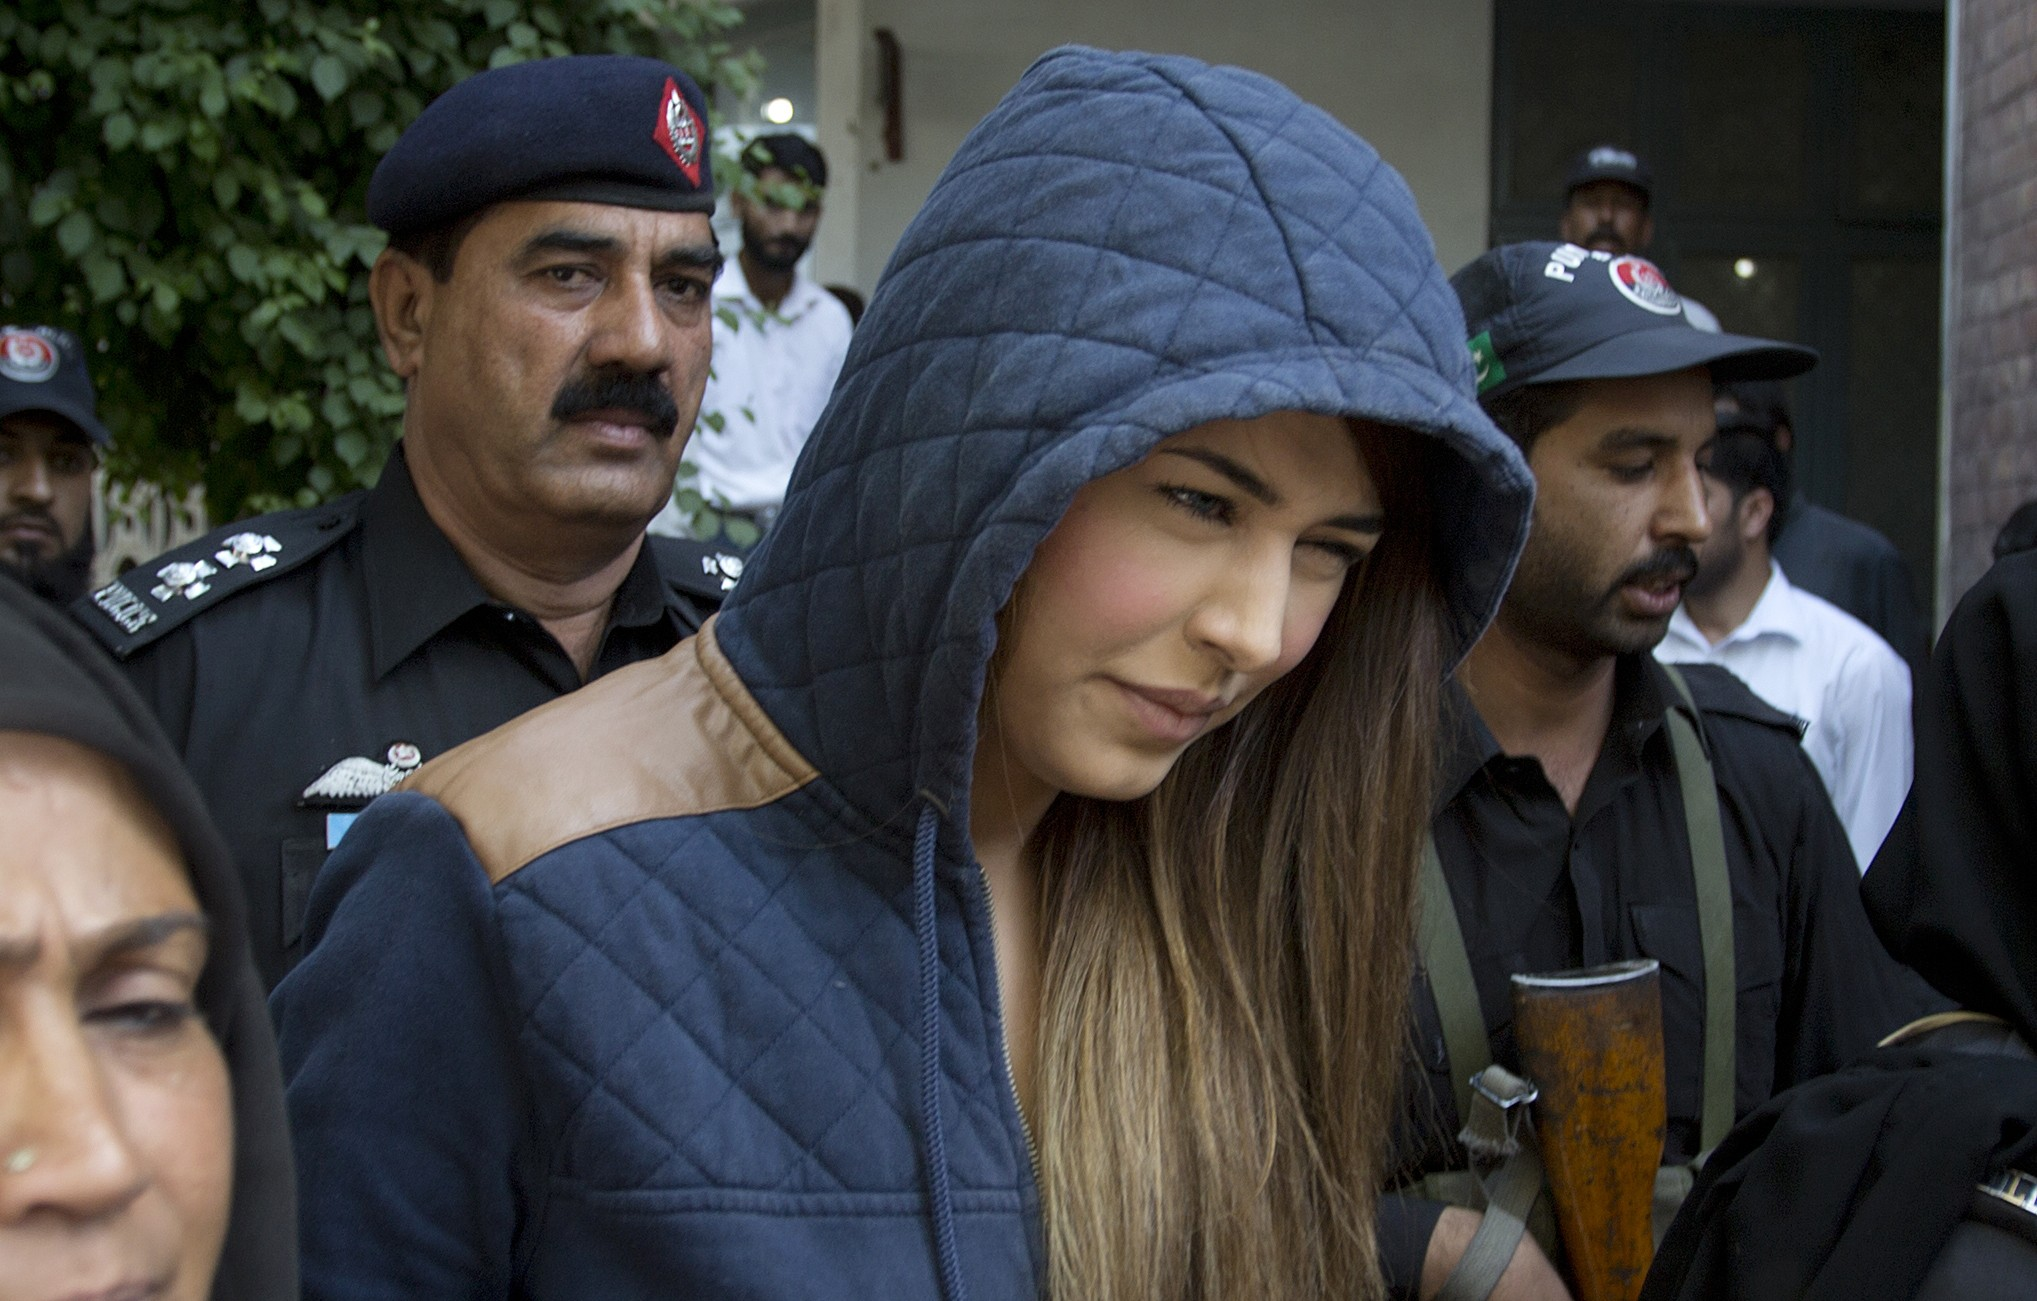 """Do you remember Ayyan Ali and her charades with the law of Pakistan? I am sure, you do. After years of laying low and fleeing Pakistan, she has teased everyone with the comeback. The convicted criminal of smuggling is ready to make a scandalous comeback. Ayyan's Comeback To Entertainment On her official page on Facebook, the supermodel revealed that she has now decided to turn into a singer. She announced that her music album is complete, and the fans can expect to hear the official launch within the coming weeks. She wrote on her Facebook post: """"Time to ride & double check my upcoming 7 tracks in one of my favourite oldest lambo. """"I just wanna make sure they sound awesome,so u all can enjoy my hard work that I m putting out after 5 years. """"Guys all 7 songs will be released in about one week or max two weeks time span"""" Here is her official Facebook post featuring the news and the gorgeous pair of cars: Her Upcoming Album Though we do not know a lot about what's the album is going to be, we do know that it will feature seven songs. The rumors still contest if the songs will be in English and Urdu. Though the album is aimed at Pakistani audience but will be released from Ali's haven in Dubai. Her Lavish Lifestyle She might be a convicted felon but does not mean she doesn't live with style. Ayyan not only announced her upcoming album but when on to show off her Lamborghini and Range Rover as well. She not only owns these cars, but is living a lavish and exquisite life in Dubai following her release from prison in 2015, and she deciding to flee Pakistan in return. Why Was She Arrested? Ayyan Ali's arrest was the most scandalous arrest of the Pakistani entertainment industry. She was arrested for smuggling $506,800 out of Pakistan without informing the State Bank in 2015. After she was arrested, various claims of her being the official money laundered of PPP's Asif Zardari and various other politicians shook the industry. Not just money laundering for high-profile politi"""